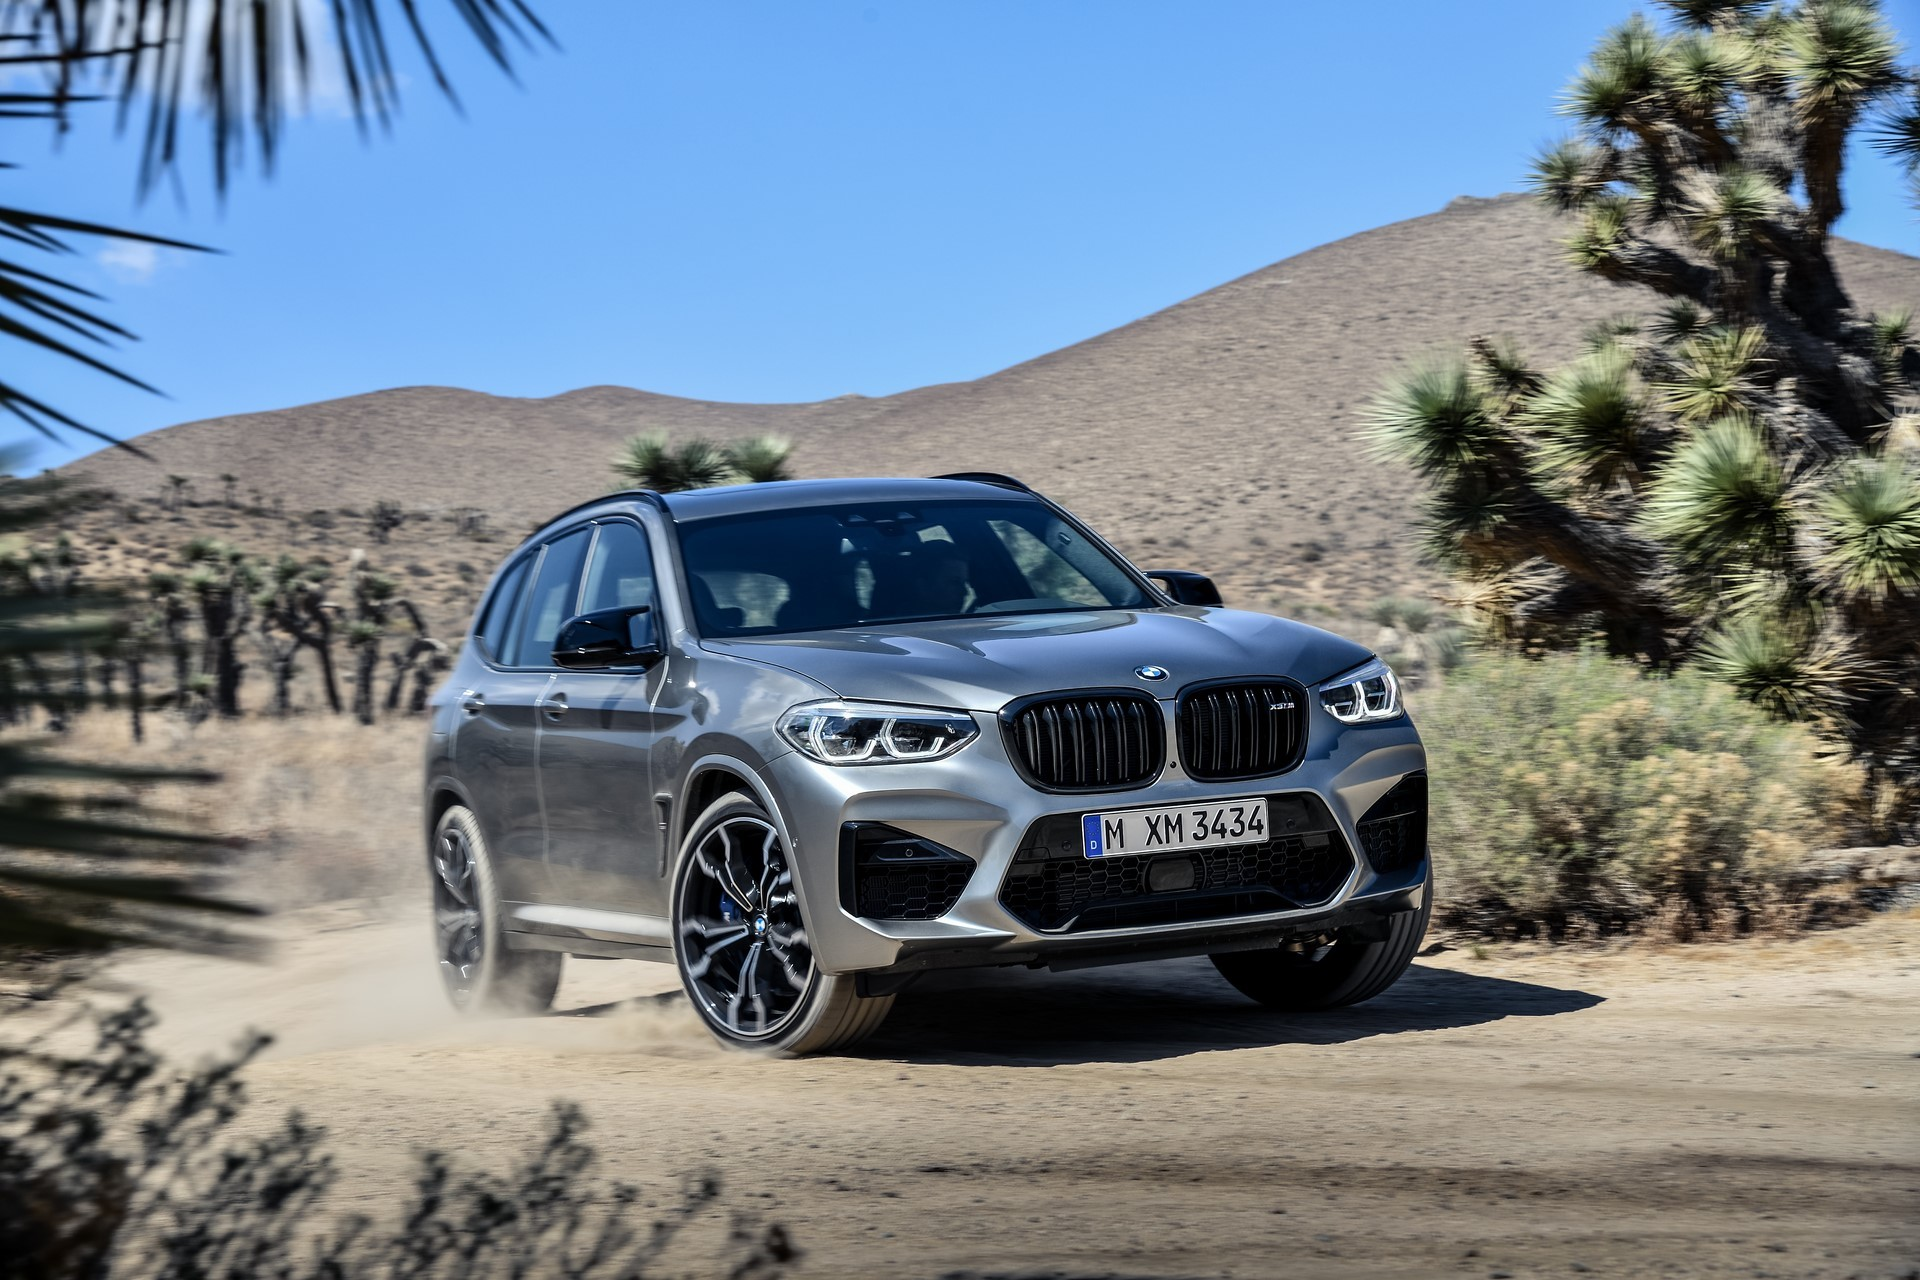 BMW X3 M and X4 M 2019 (39)